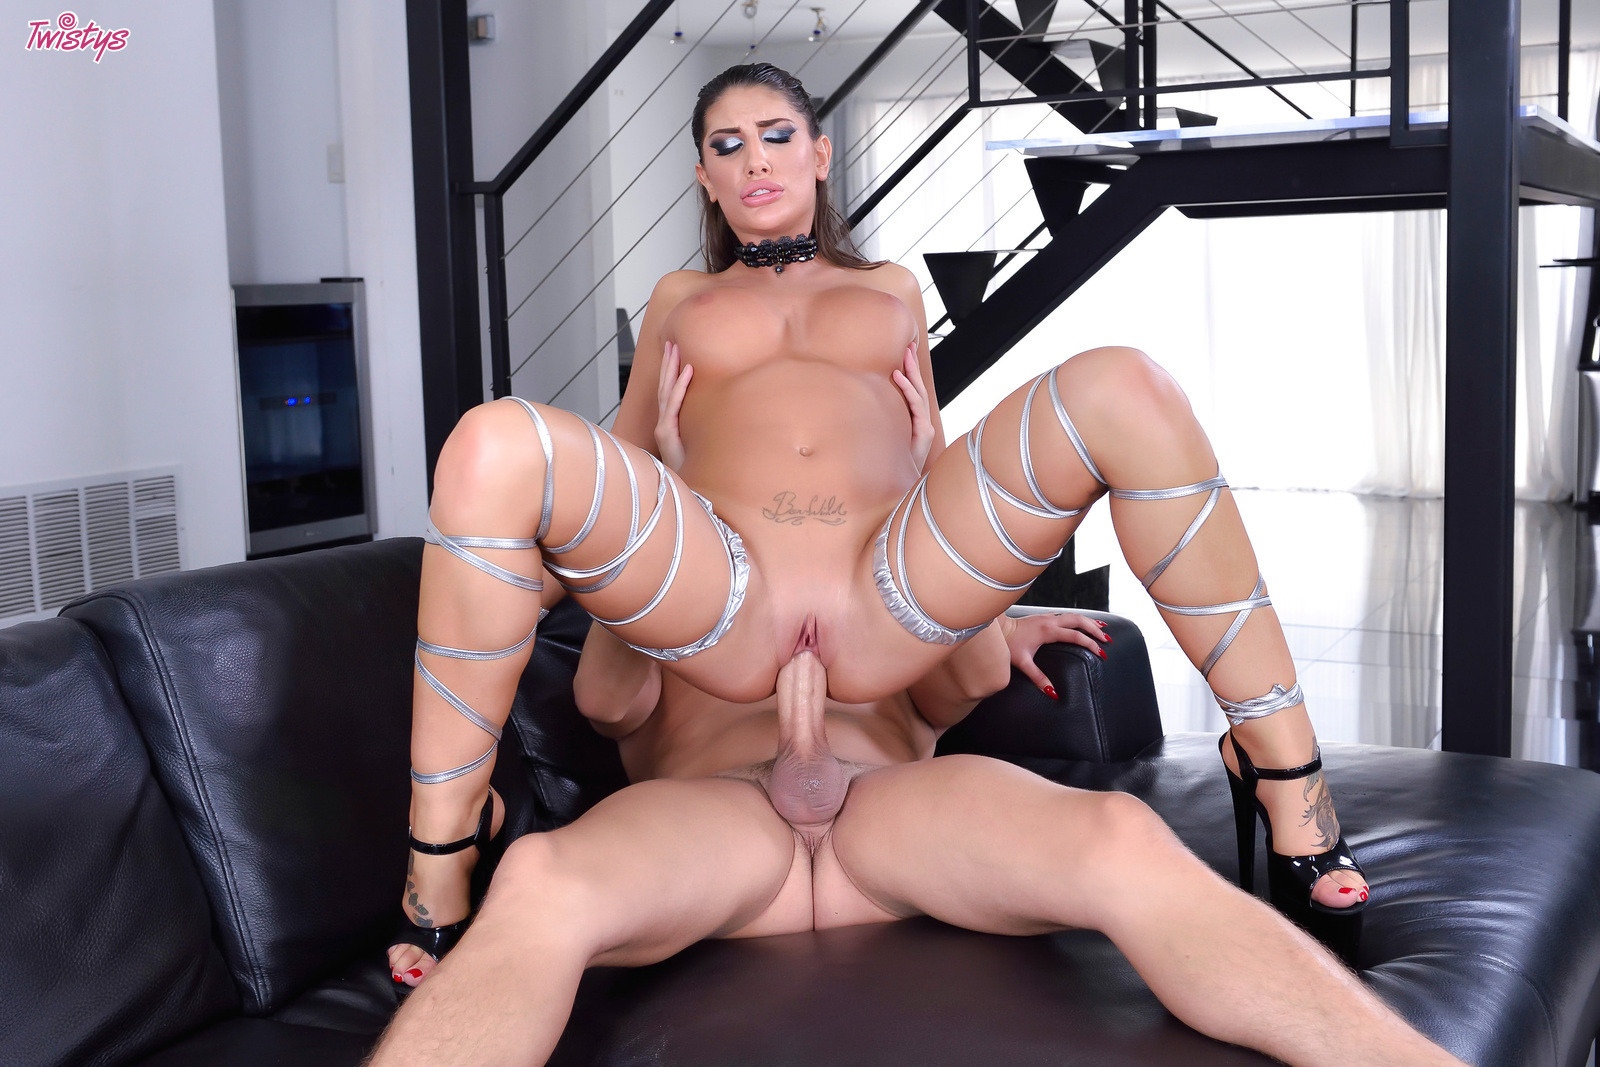 August ames reverse cowgirl